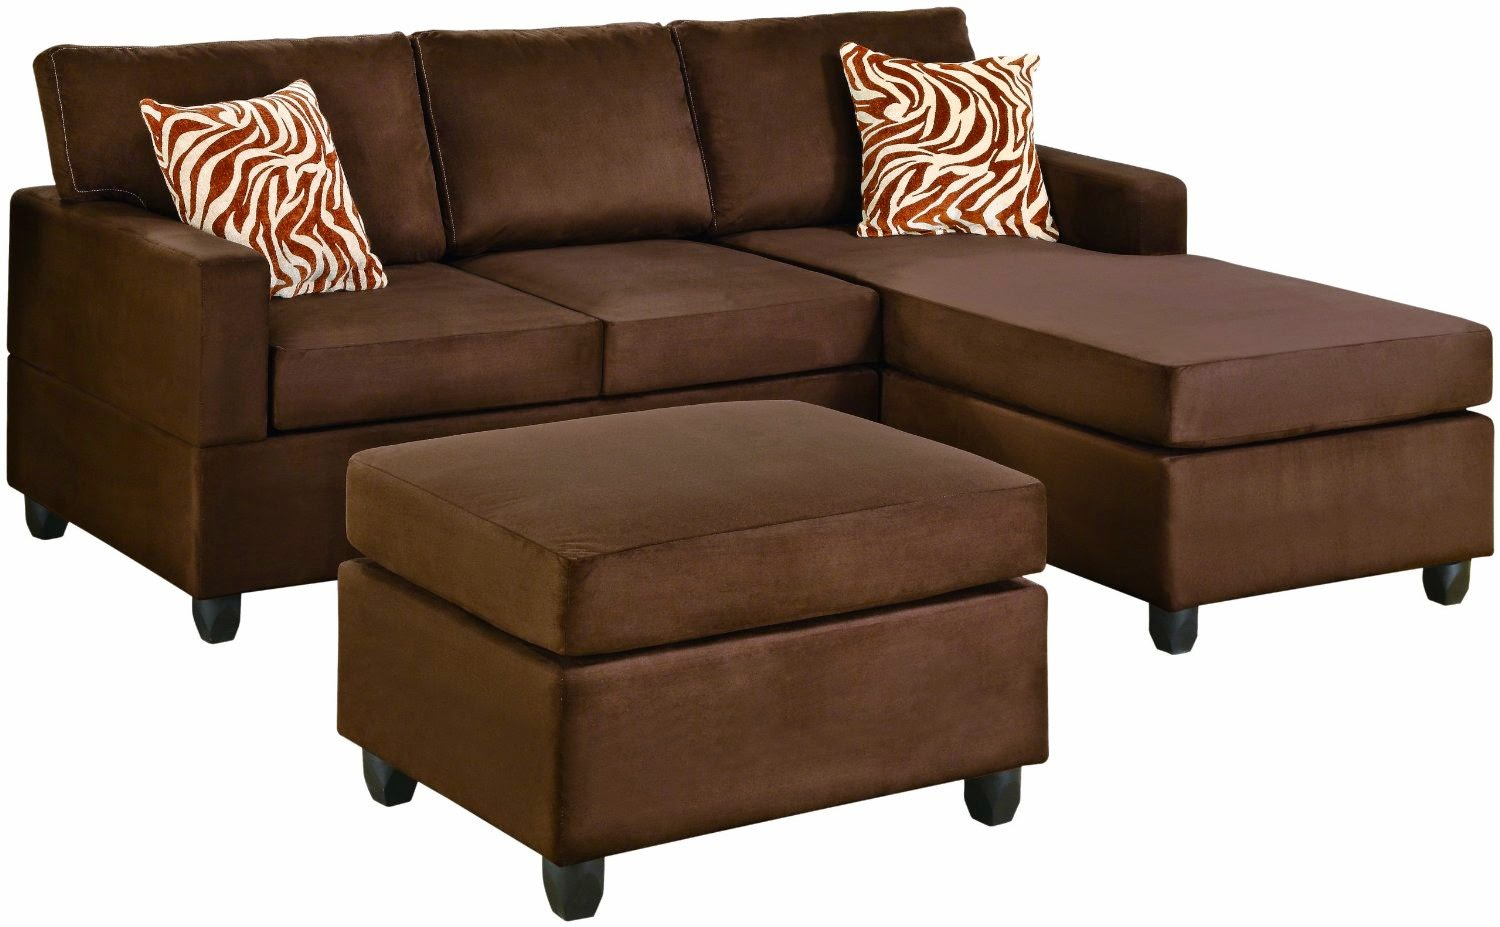 Couch with chaise for Couch with 2 chaises